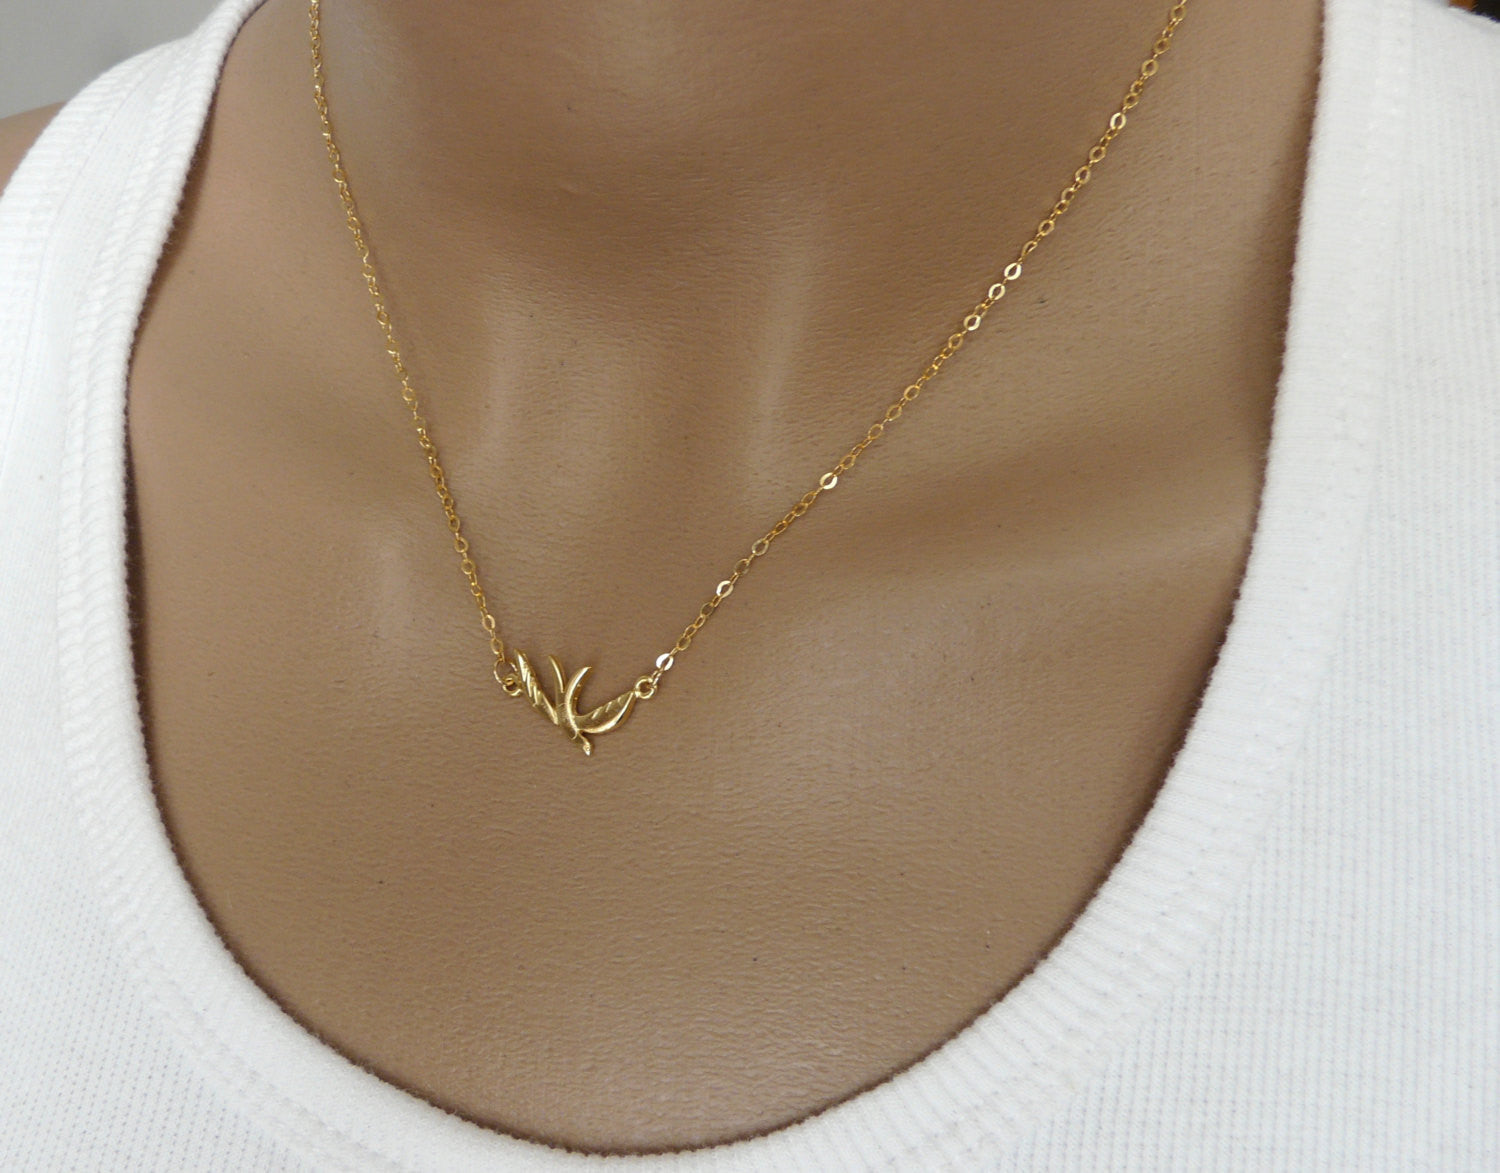 Bird charm necklace - OpaLandJewelry